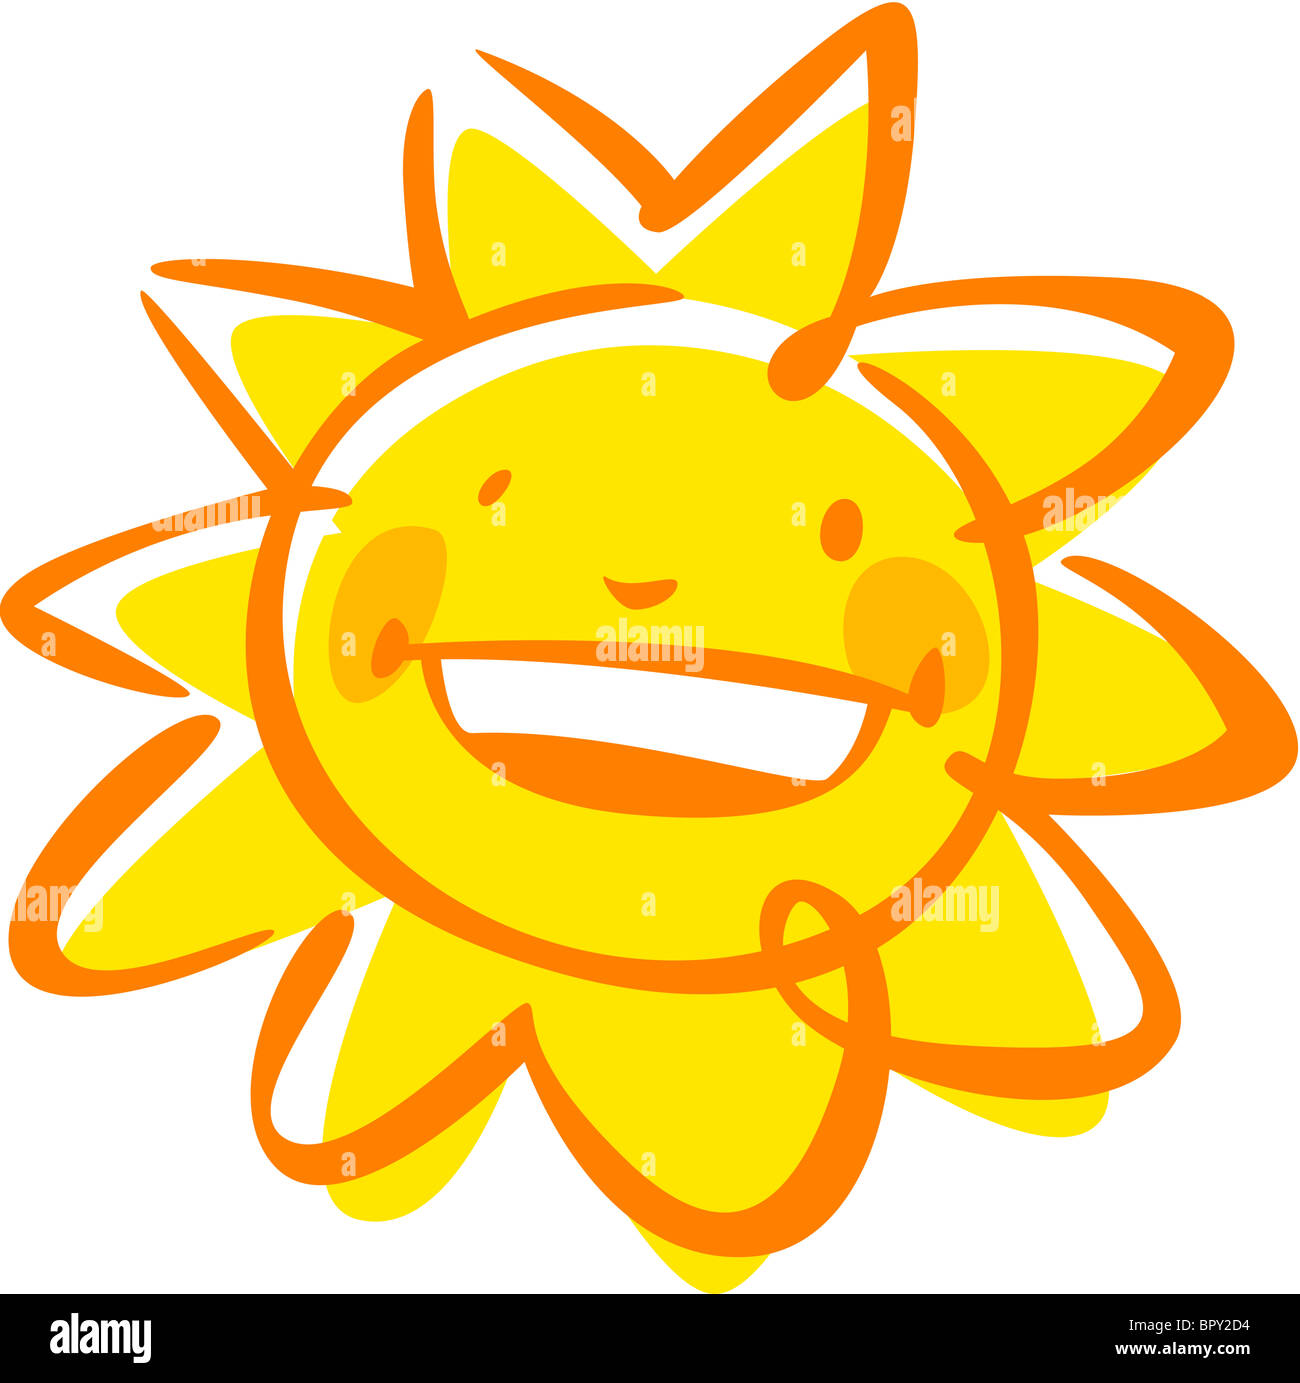 An image of a smiling sun - Stock Image